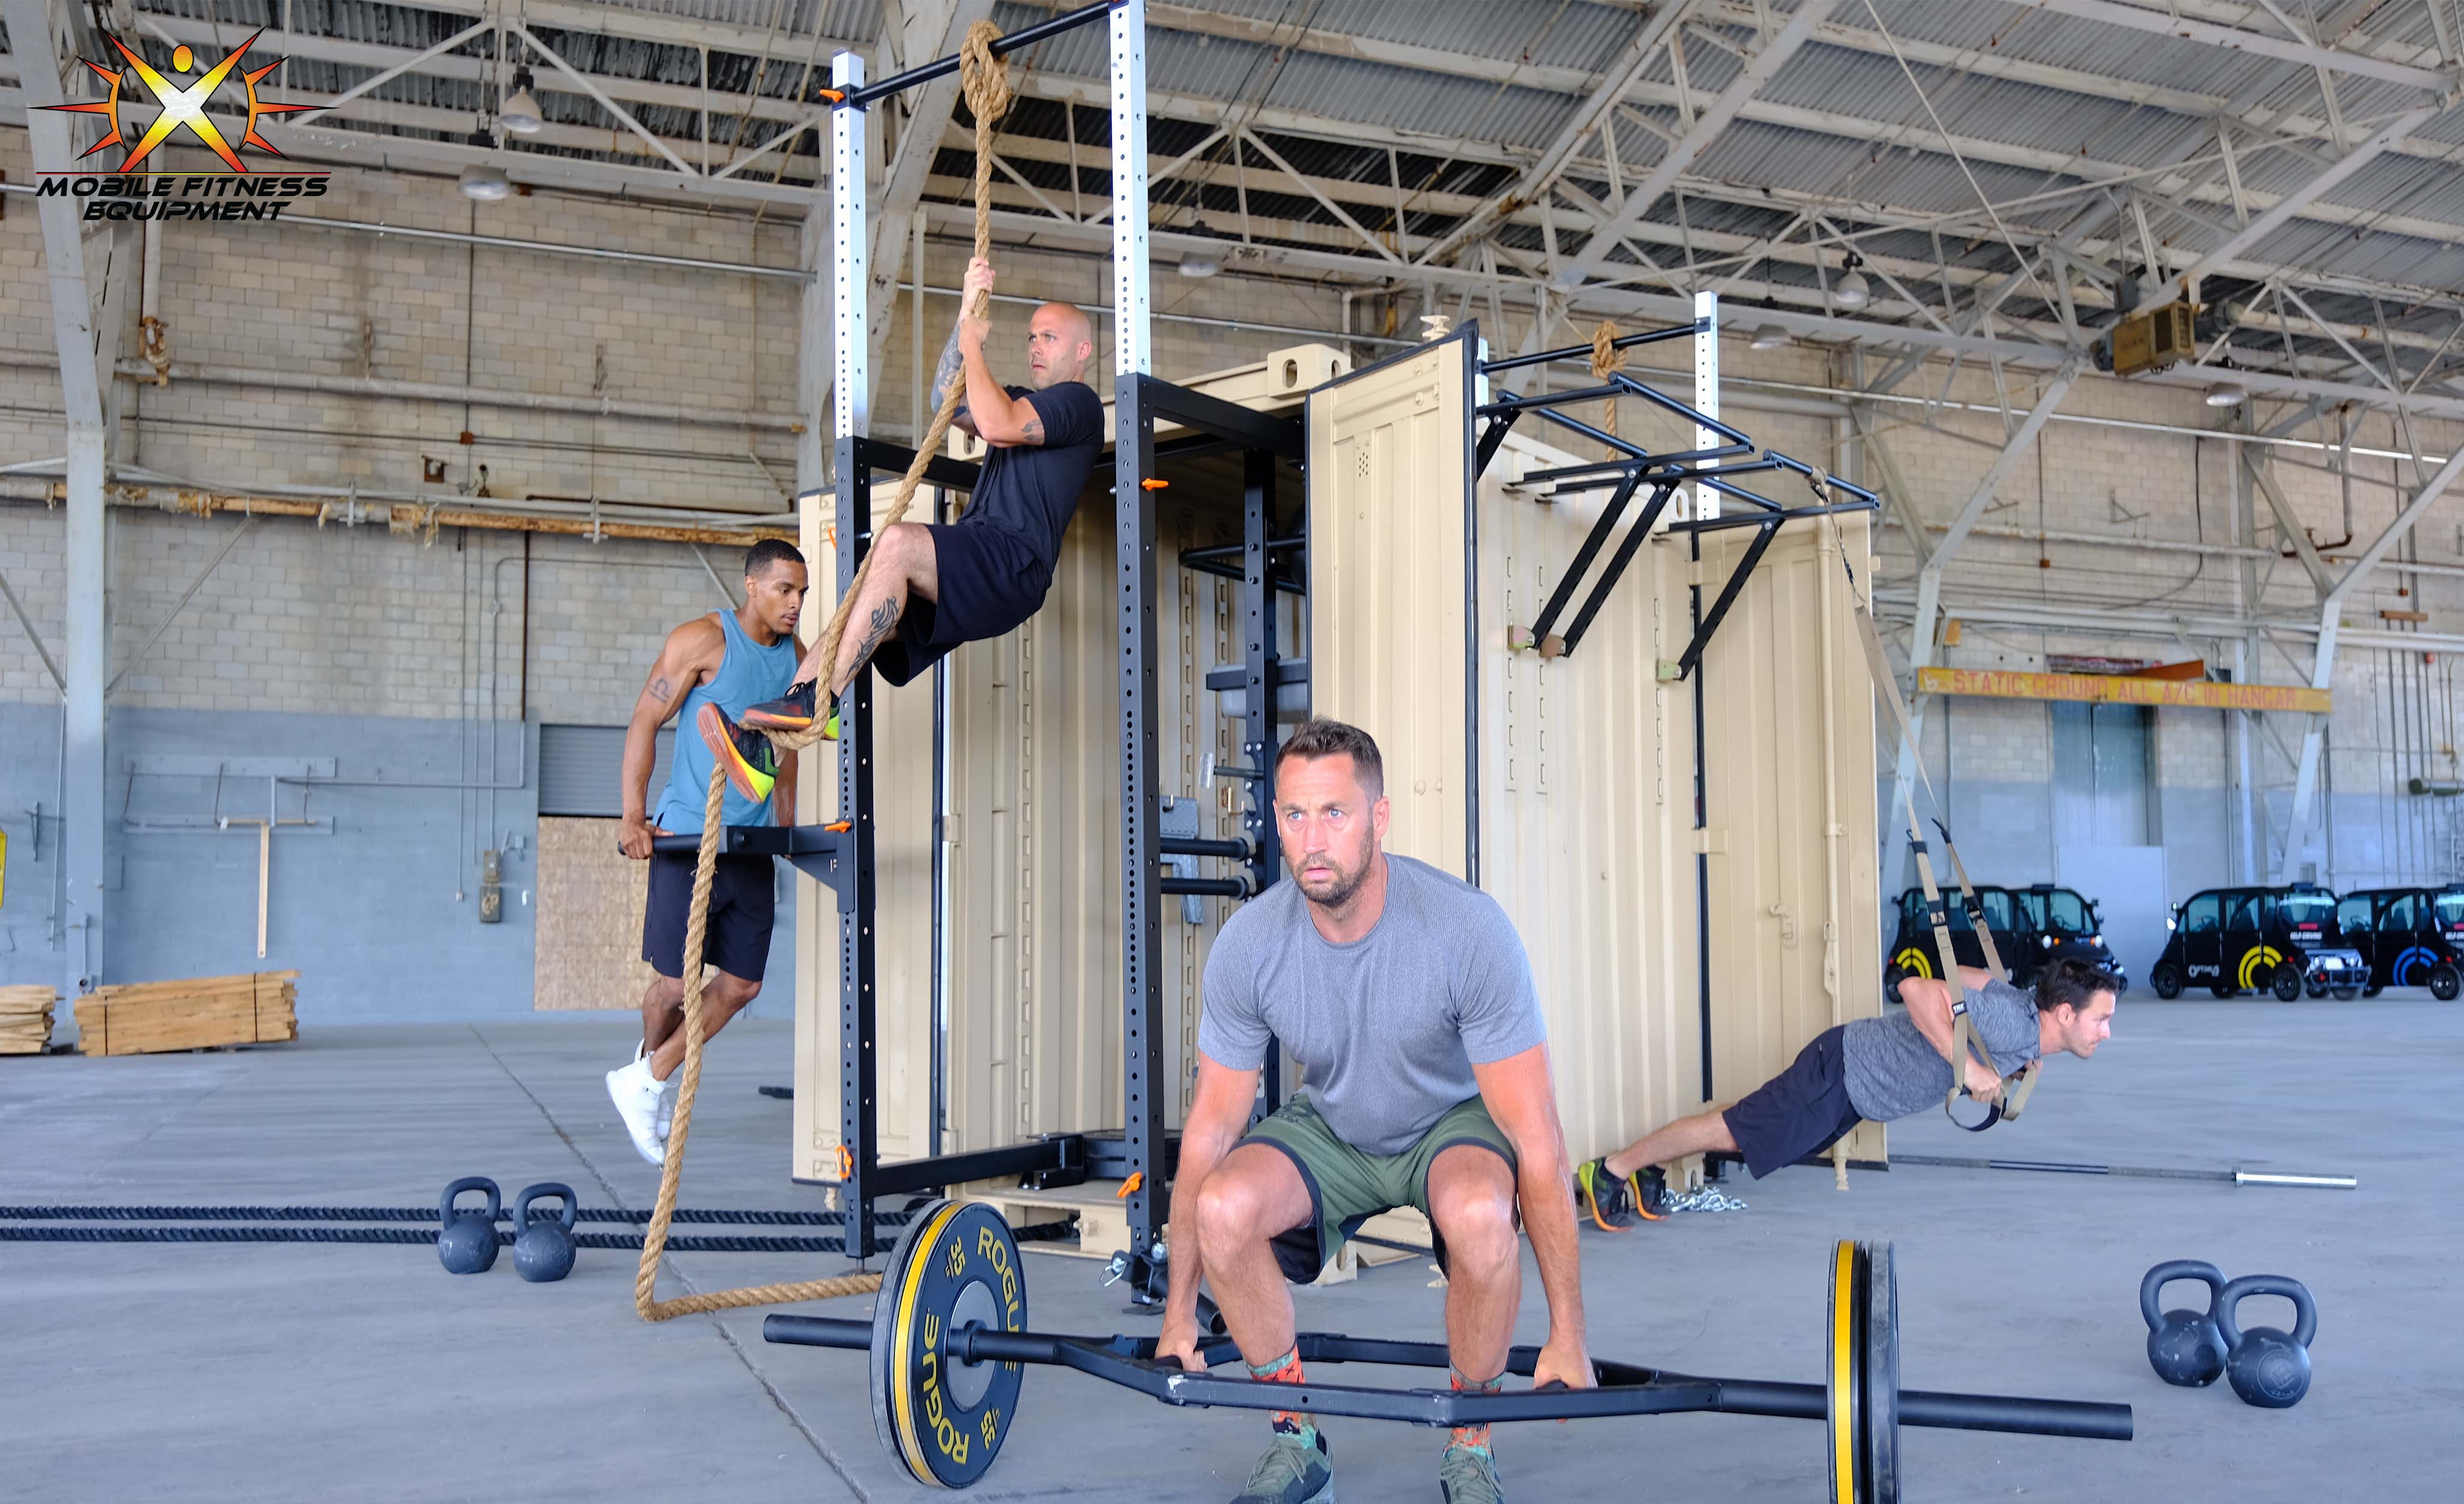 Tactical Fitness Solution Mfu Mobile Fitness Equipment